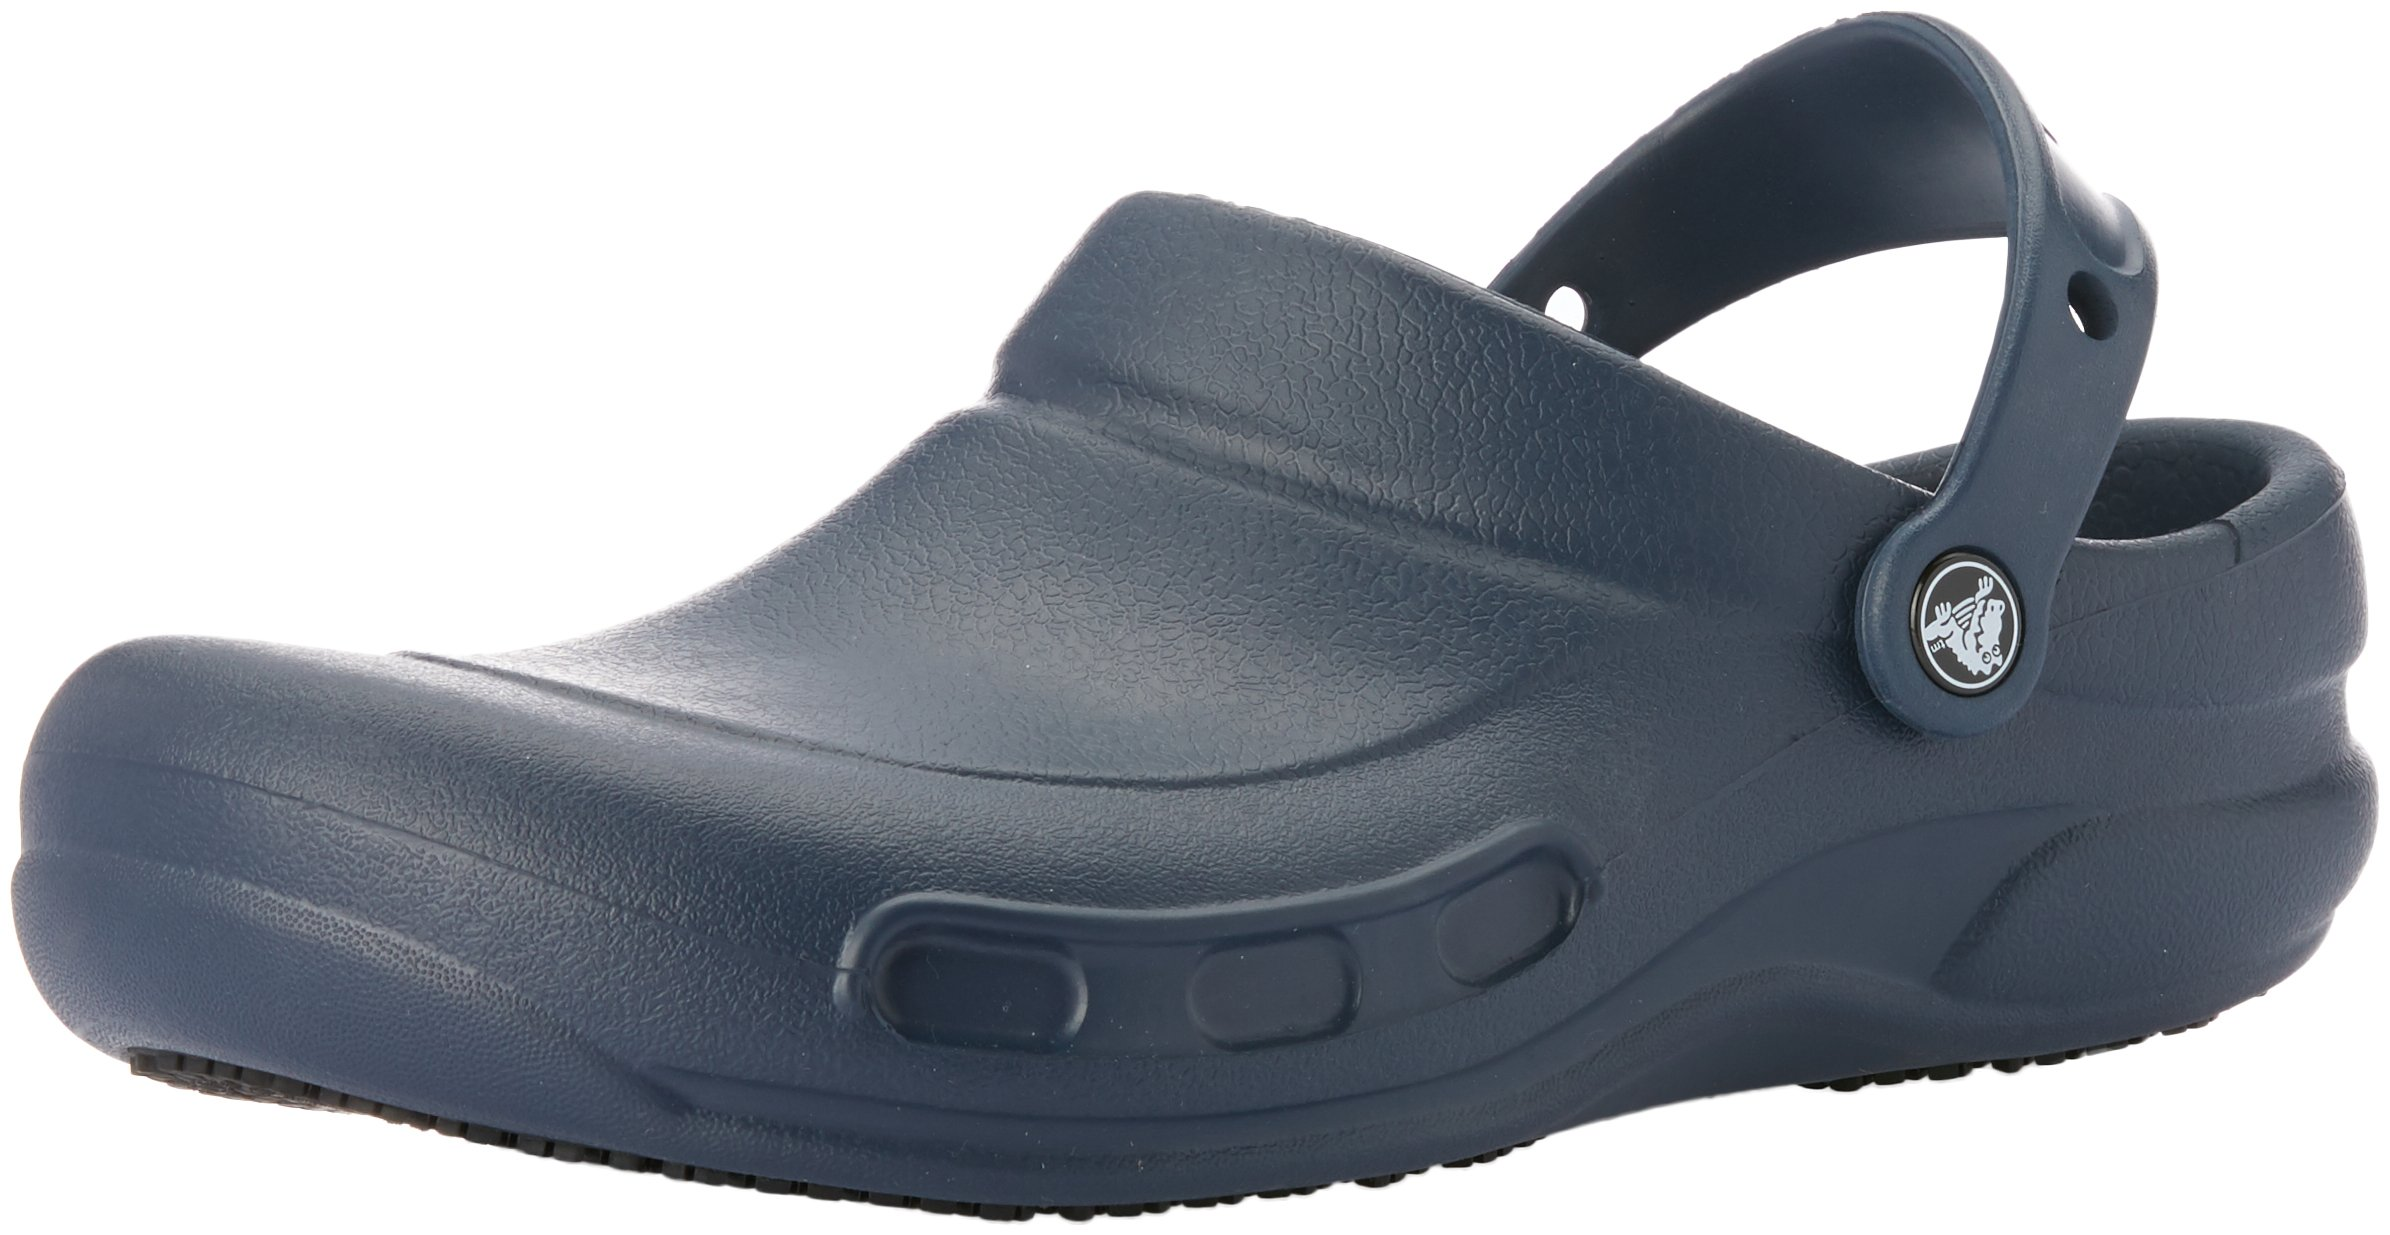 Crocs Bistro Adult Shoes Lifestyle Footwear - Navy/Size M13